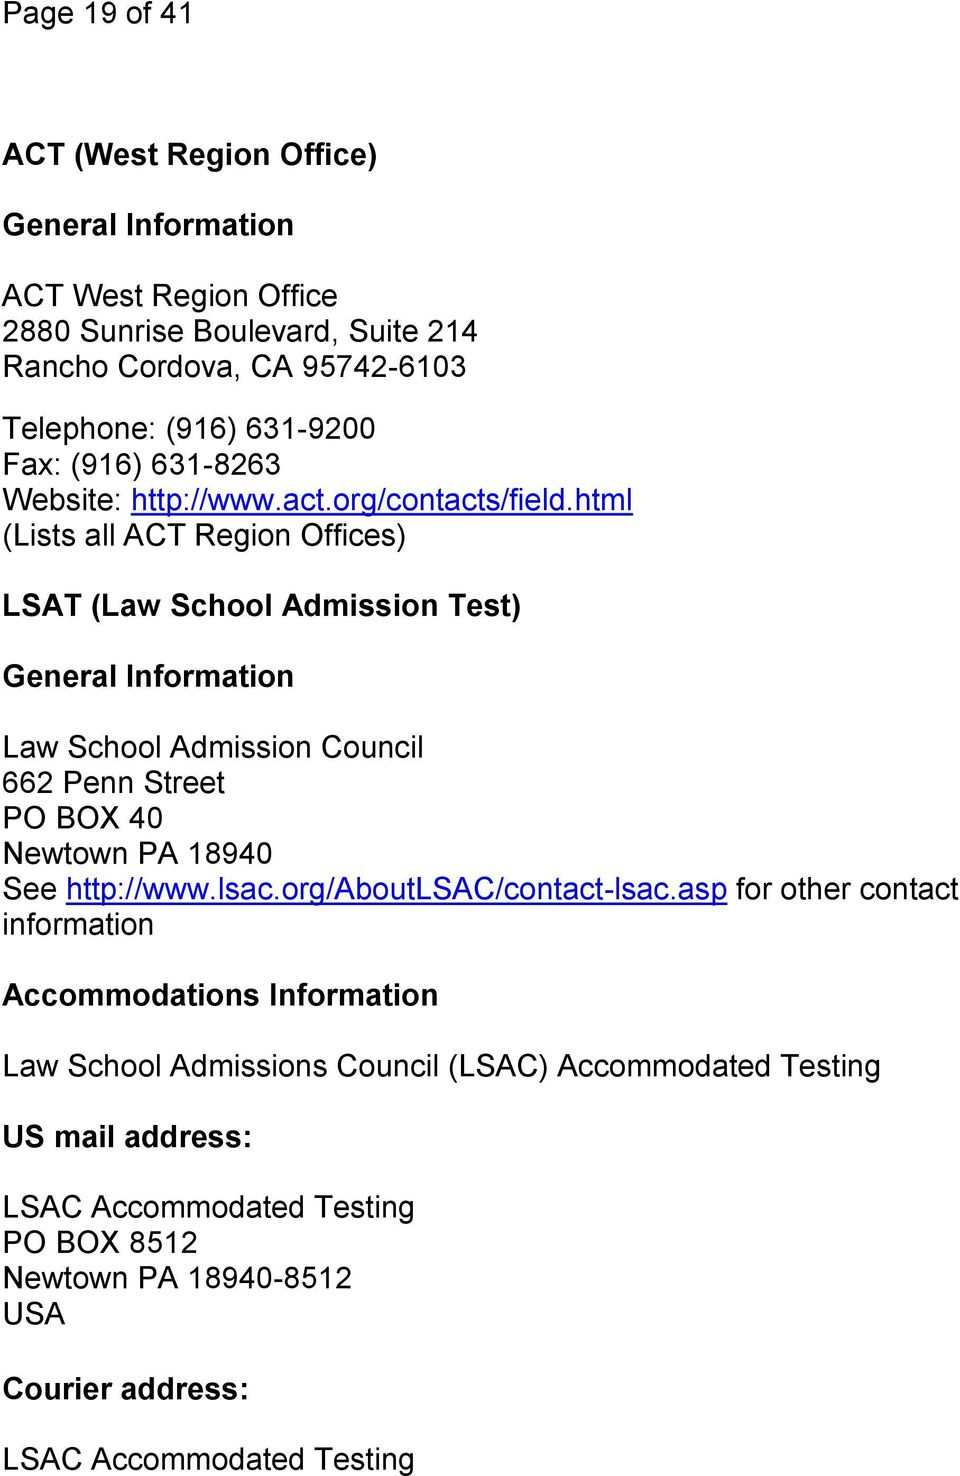 html (Lists all ACT Region Offices) LSAT (Law School Admission Test) General Information Law School Admission Council 662 Penn Street PO BOX 40 Newtown PA 18940 See